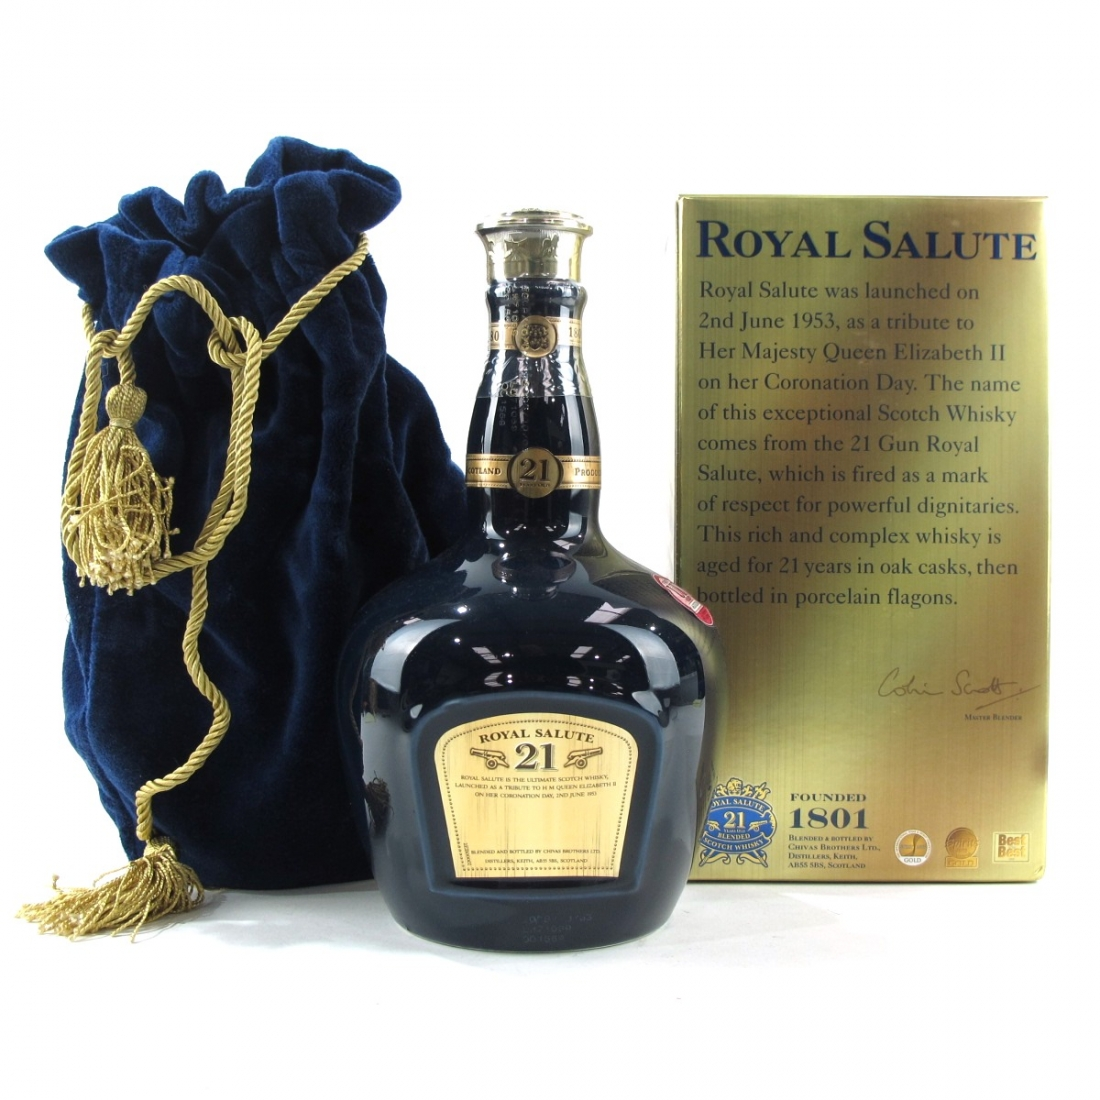 Chivas 21 Year Old Royal Salute / Sapphire Flagon